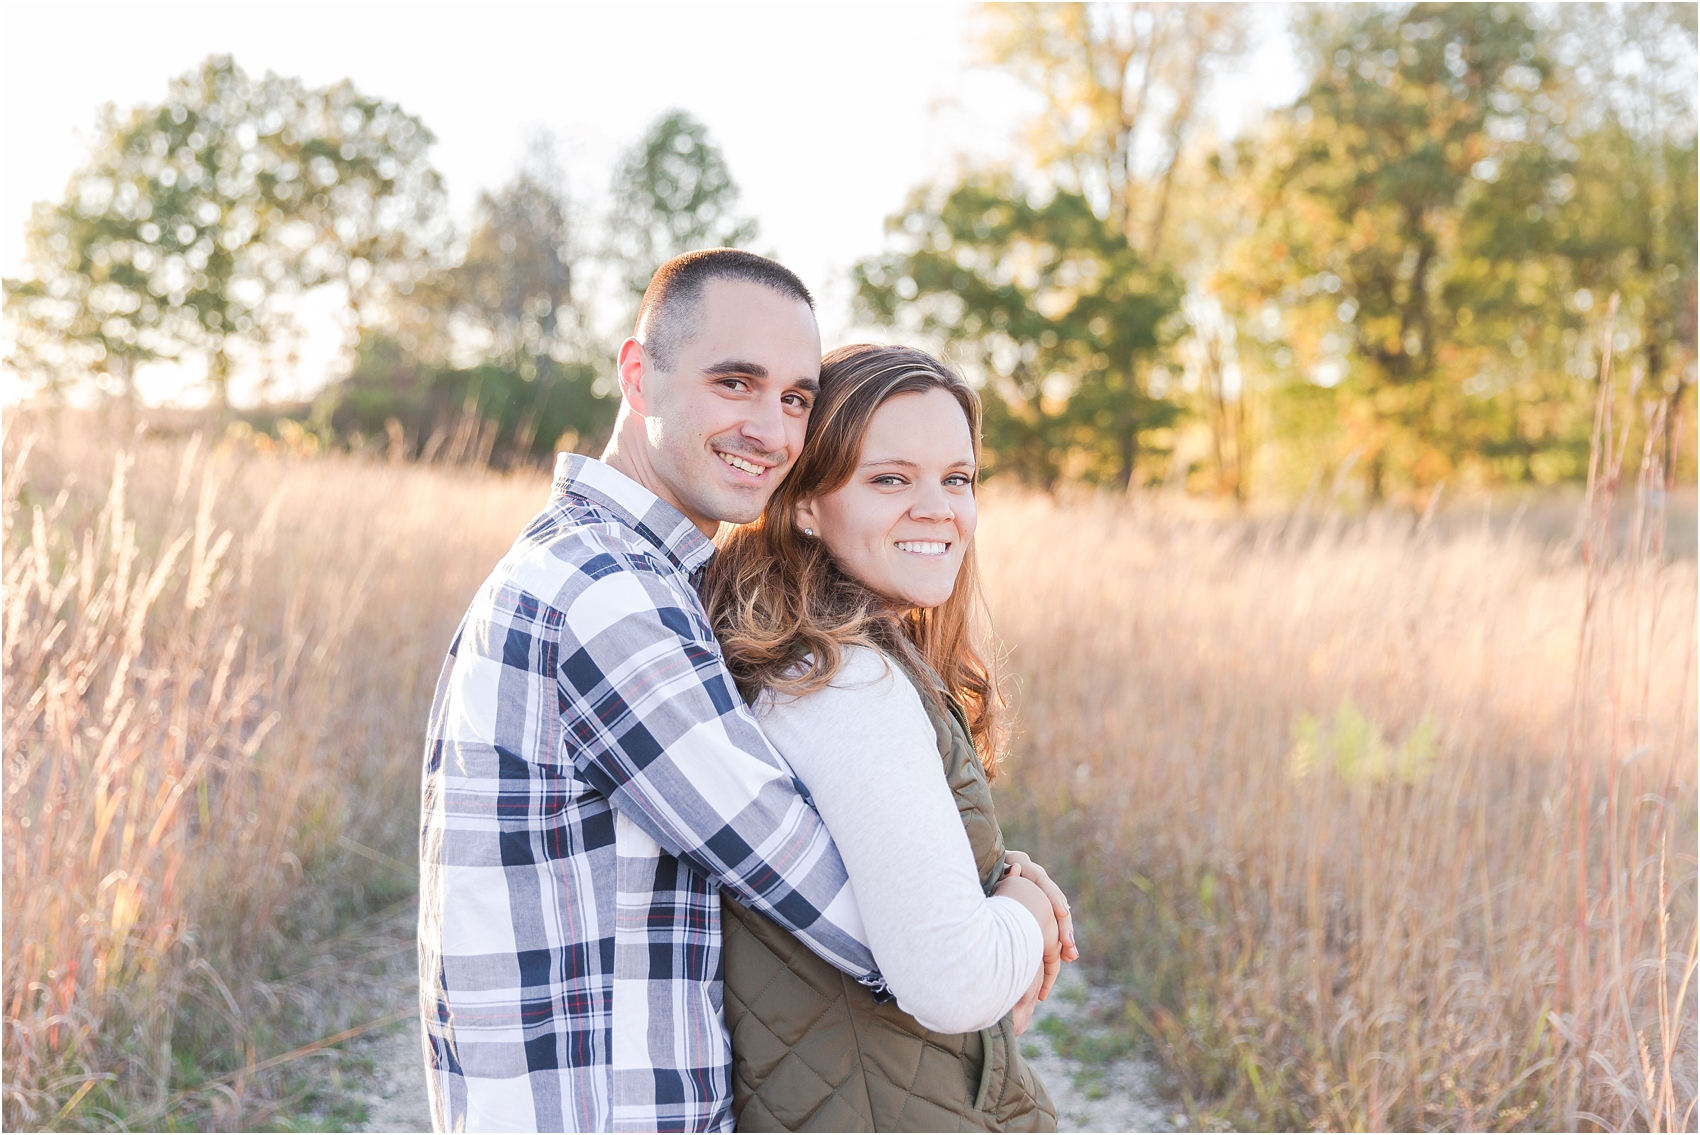 romantic-fall-engagement-photos-at-indian-springs-metropark-in-clarkston-mi-by-courtney-carolyn-photography_0003.jpg